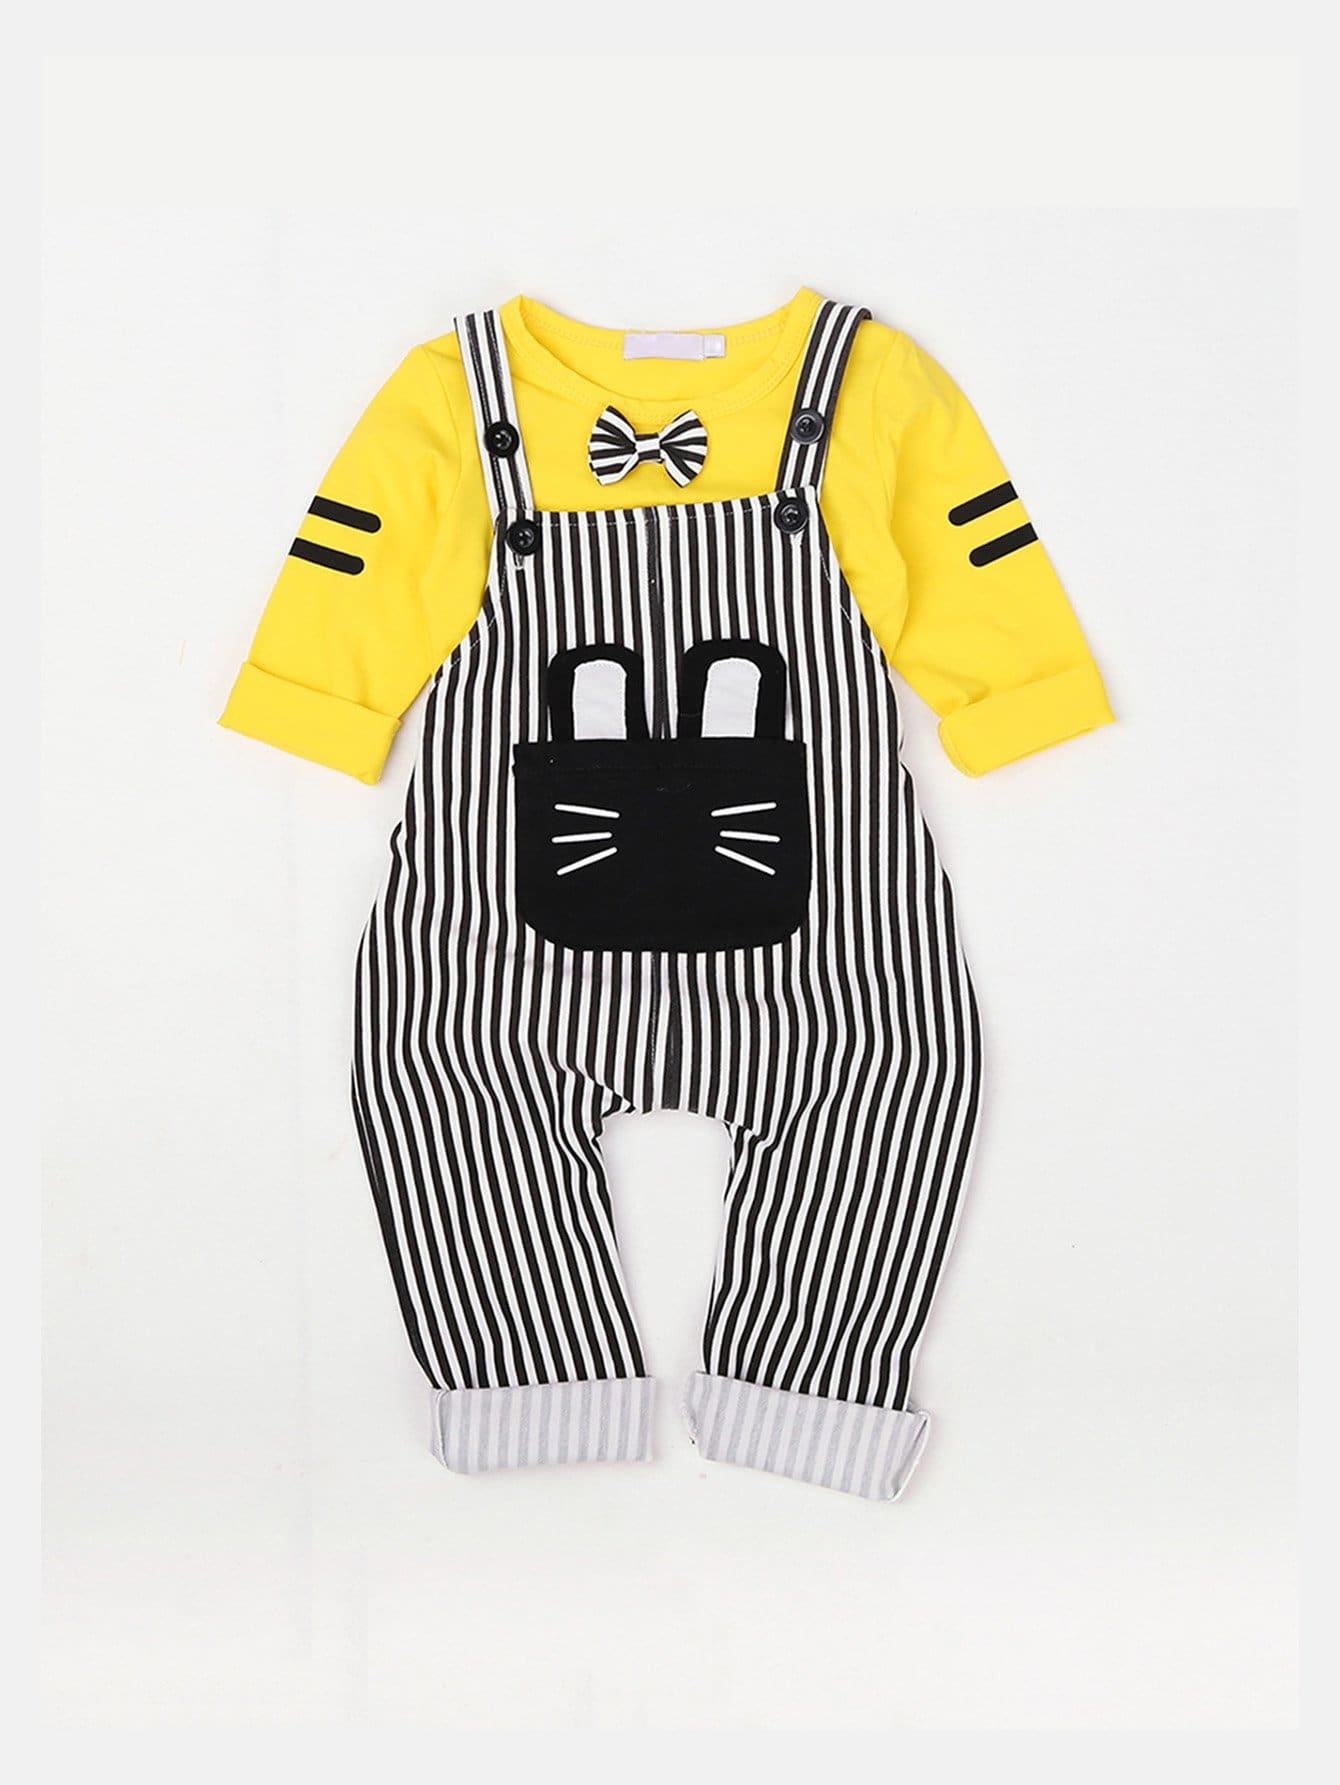 Bow Detail Tee With Striped Overalls bow detail striped dress